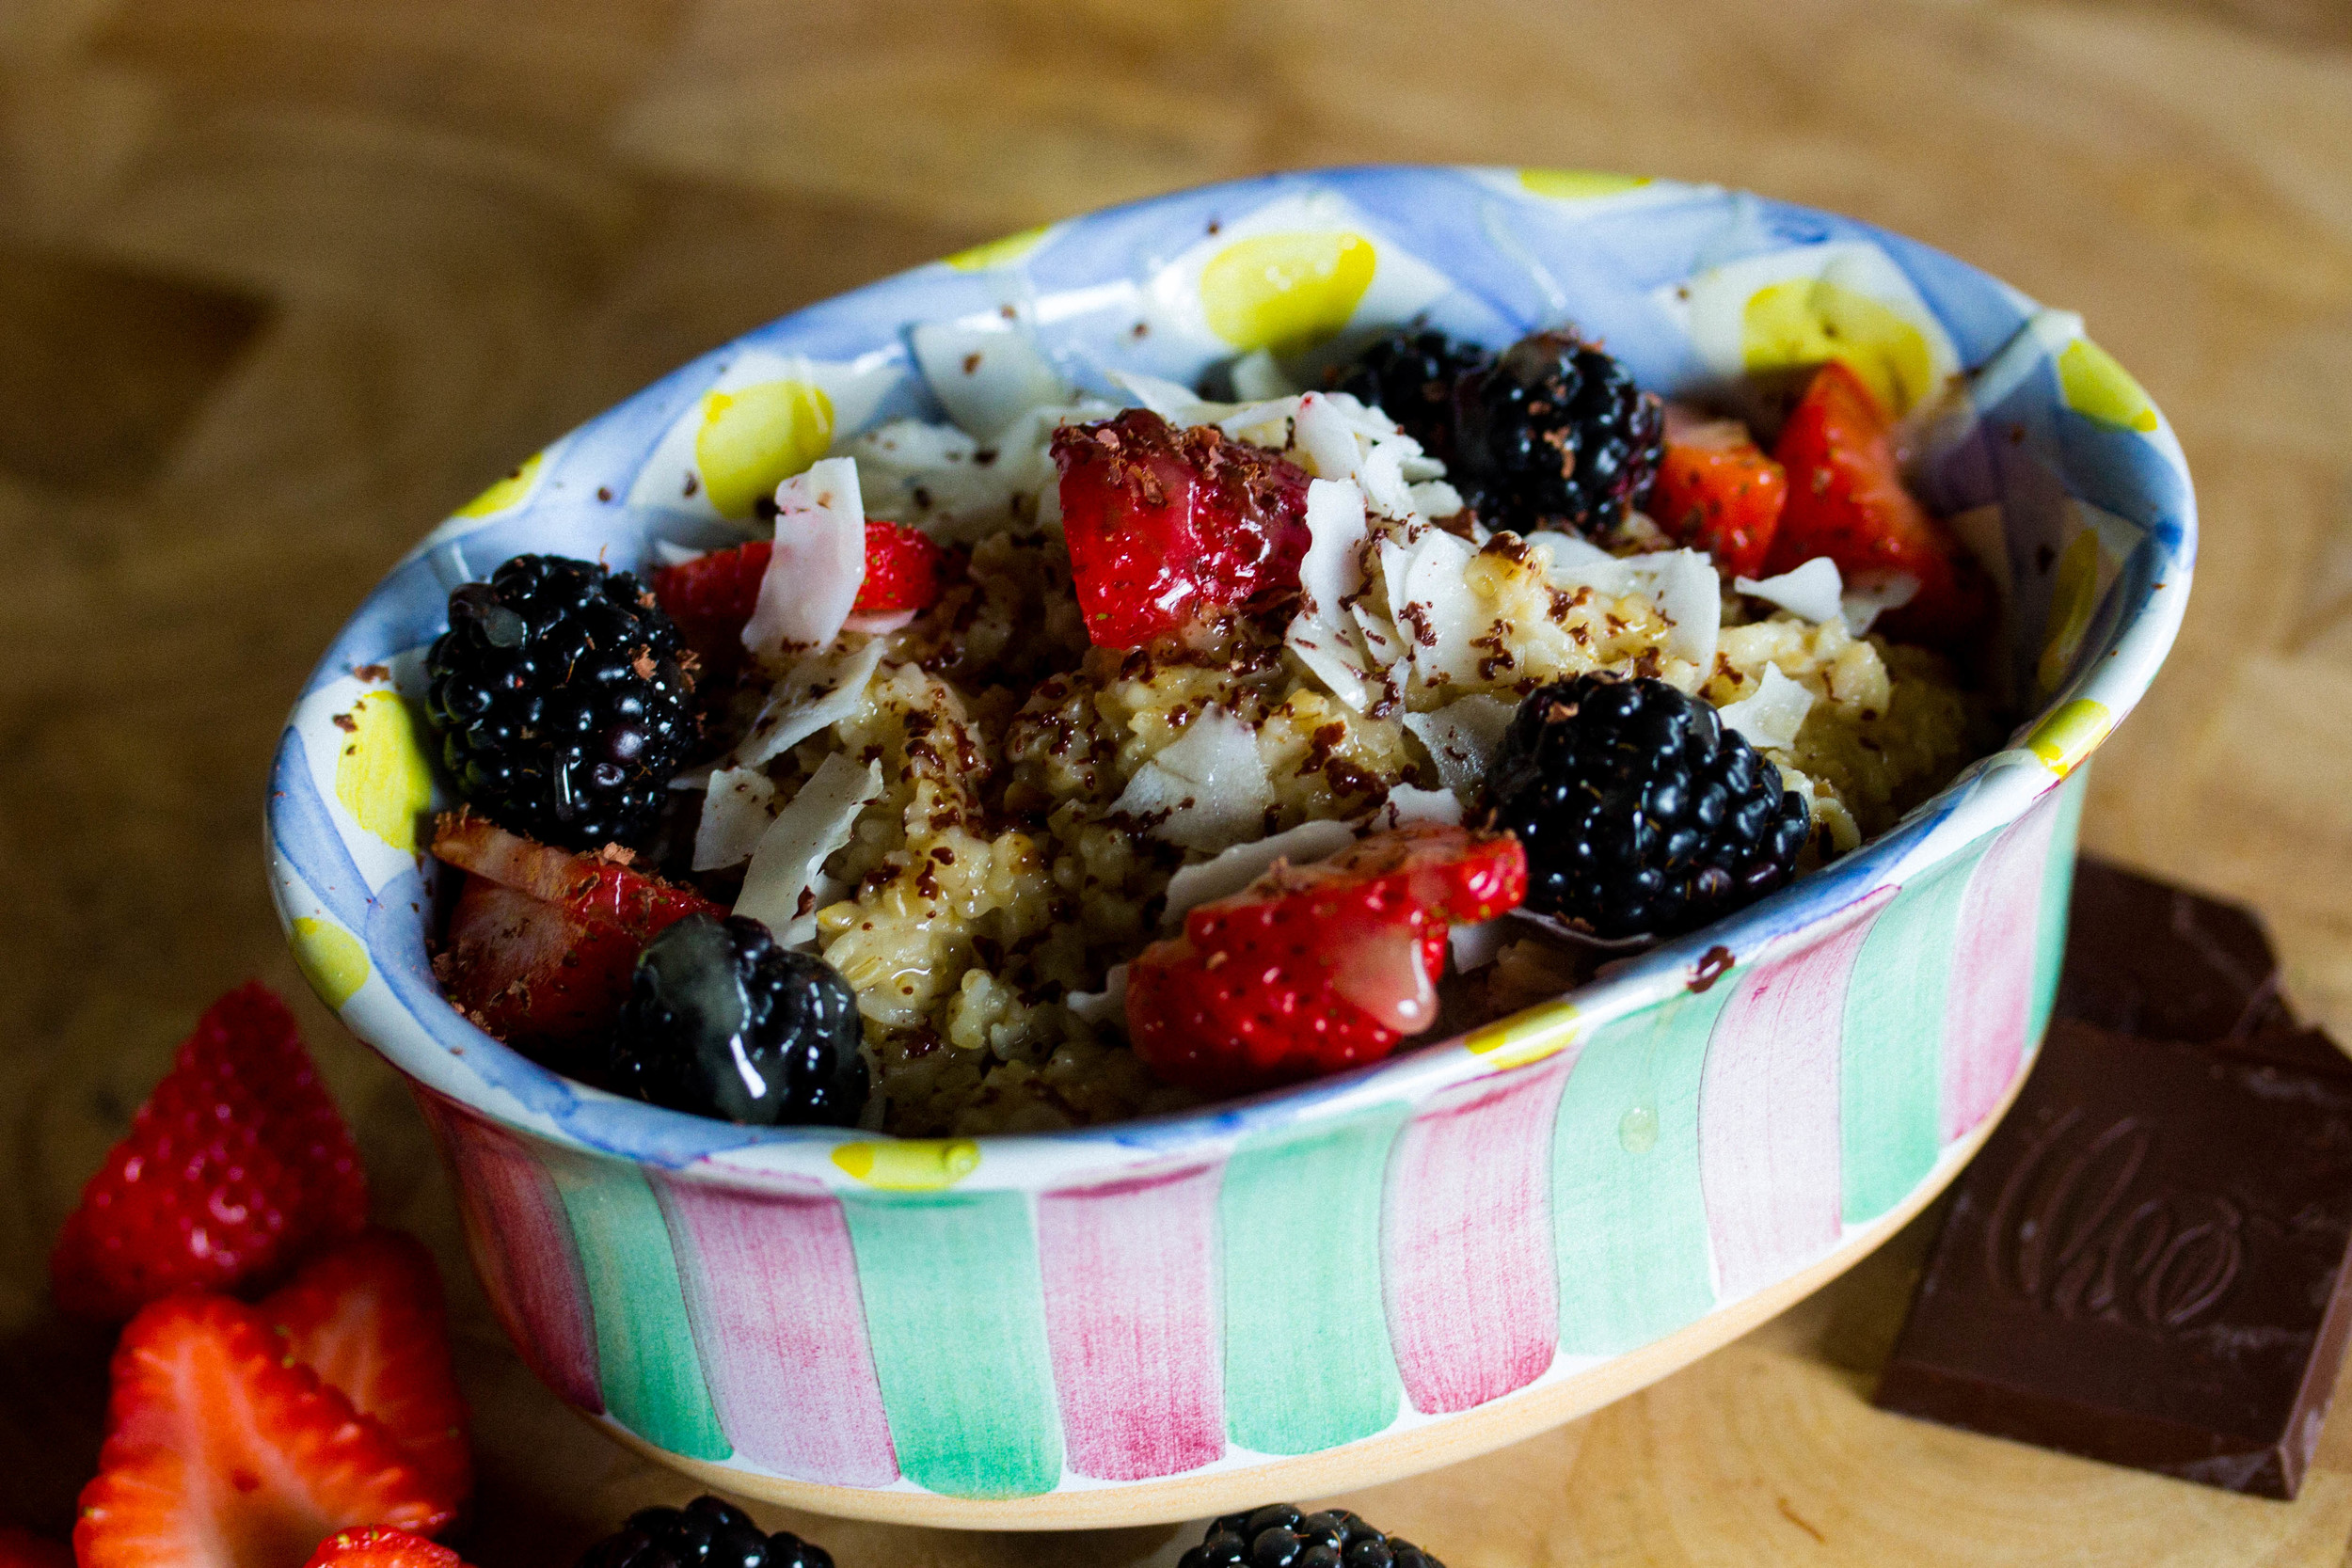 Transfer oats to serving bowl and top with favorite toppings